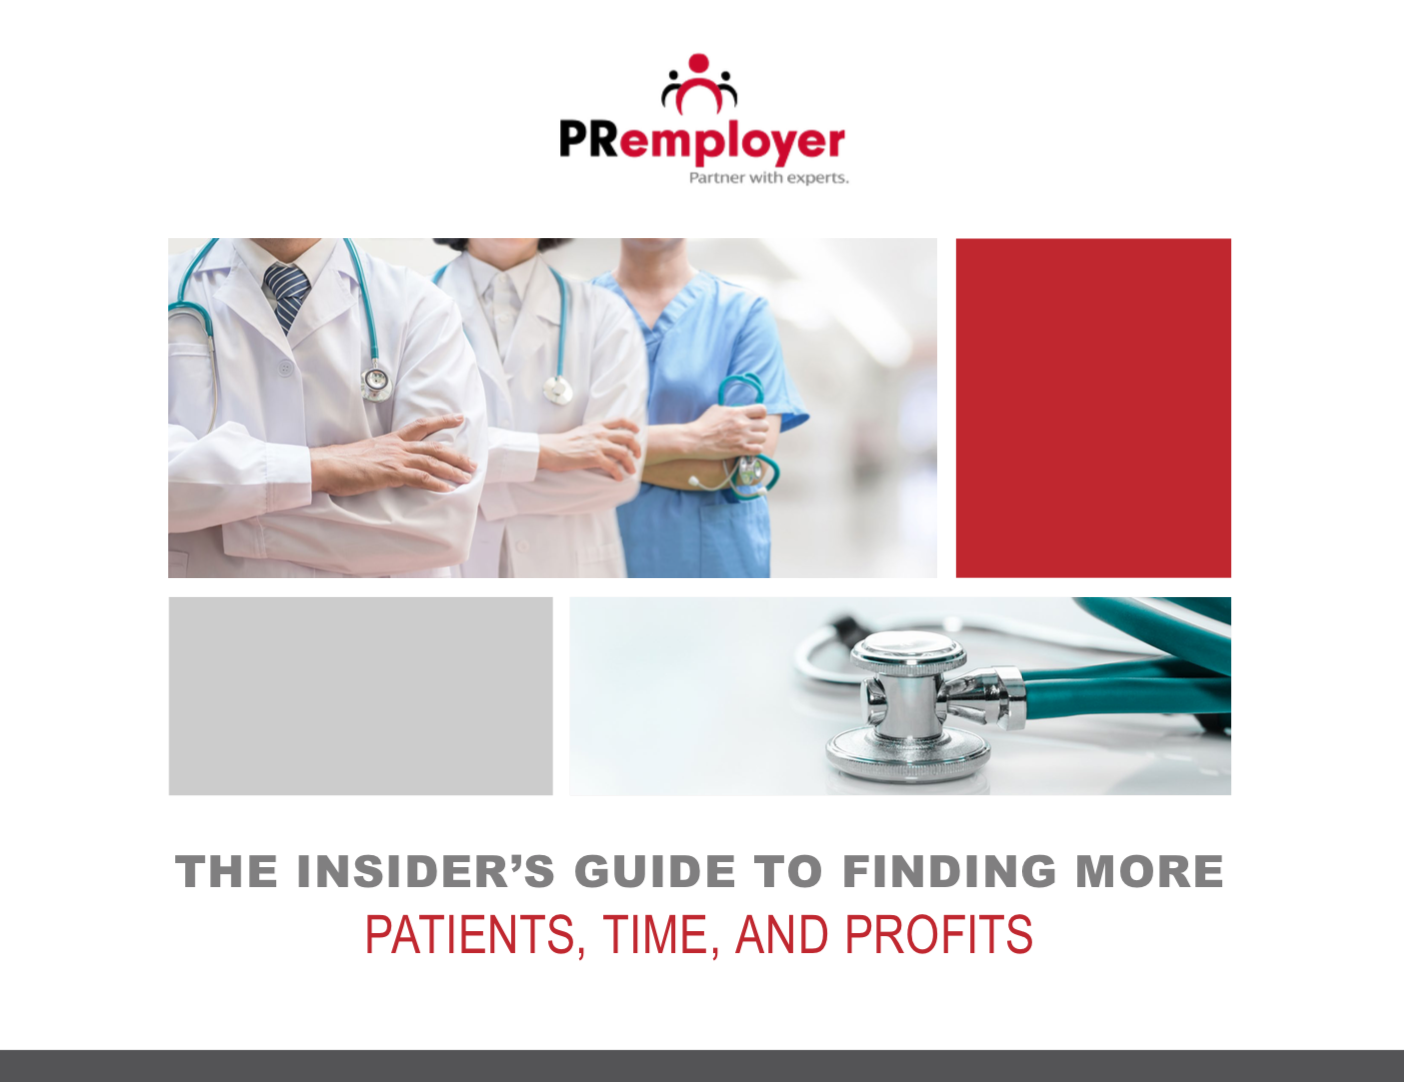 The Insiders Guide to Finding More Patients, Time and Profit